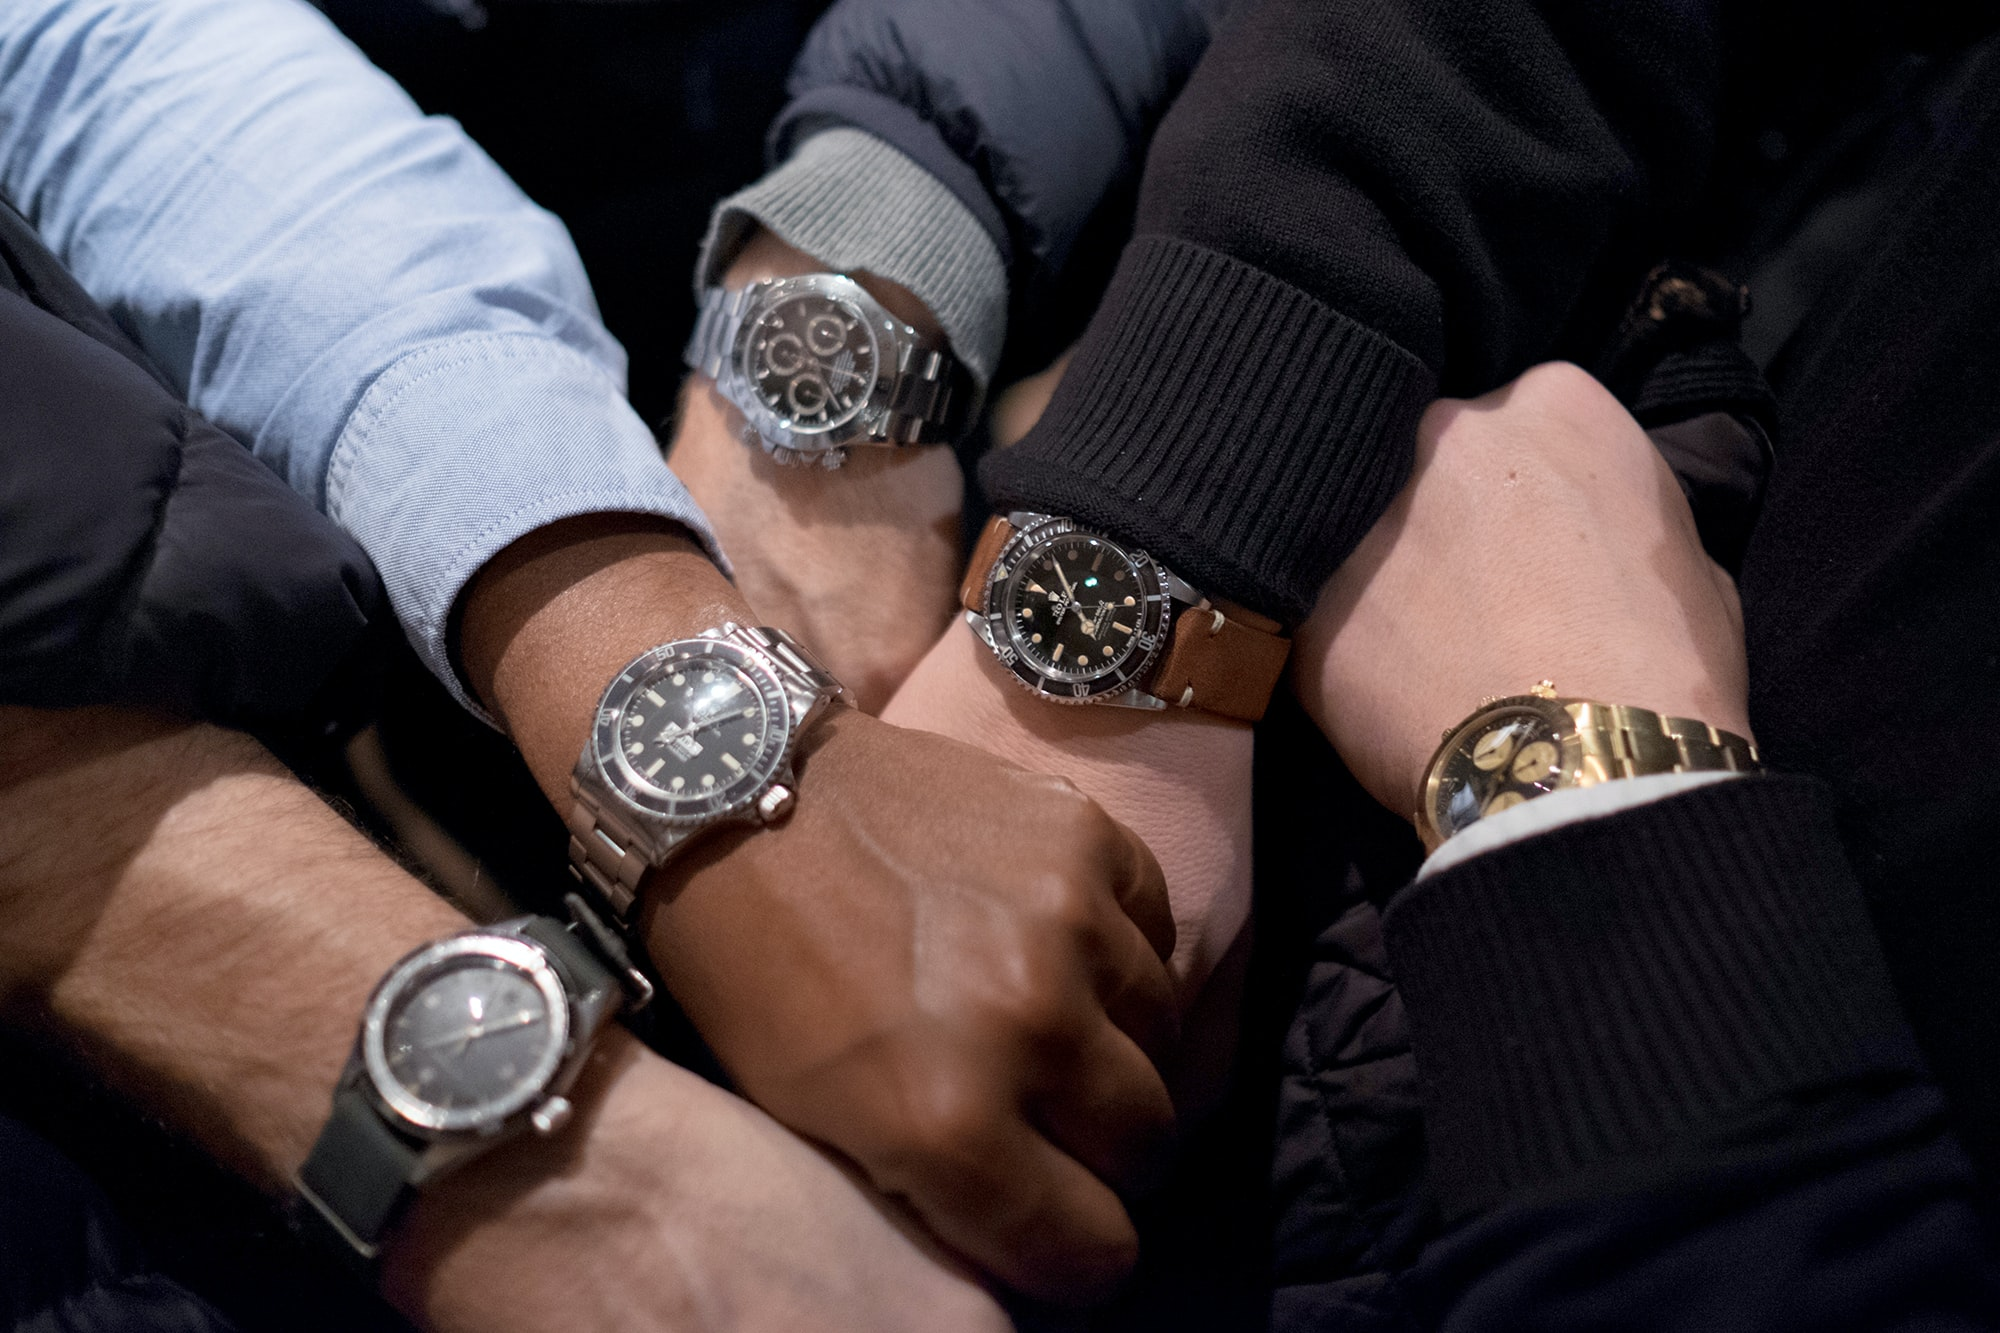 Photo Report: Watch Spotting At The HODINKEE Meet-Up In London (Plus Our Holiday 2016 Pop-Up At Harrods) Photo Report: Watch Spotting At The HODINKEE Meet-Up In London (Plus Our Holiday 2016 Pop-Up At Harrods) Hodinkee event 29 nov 2016 35